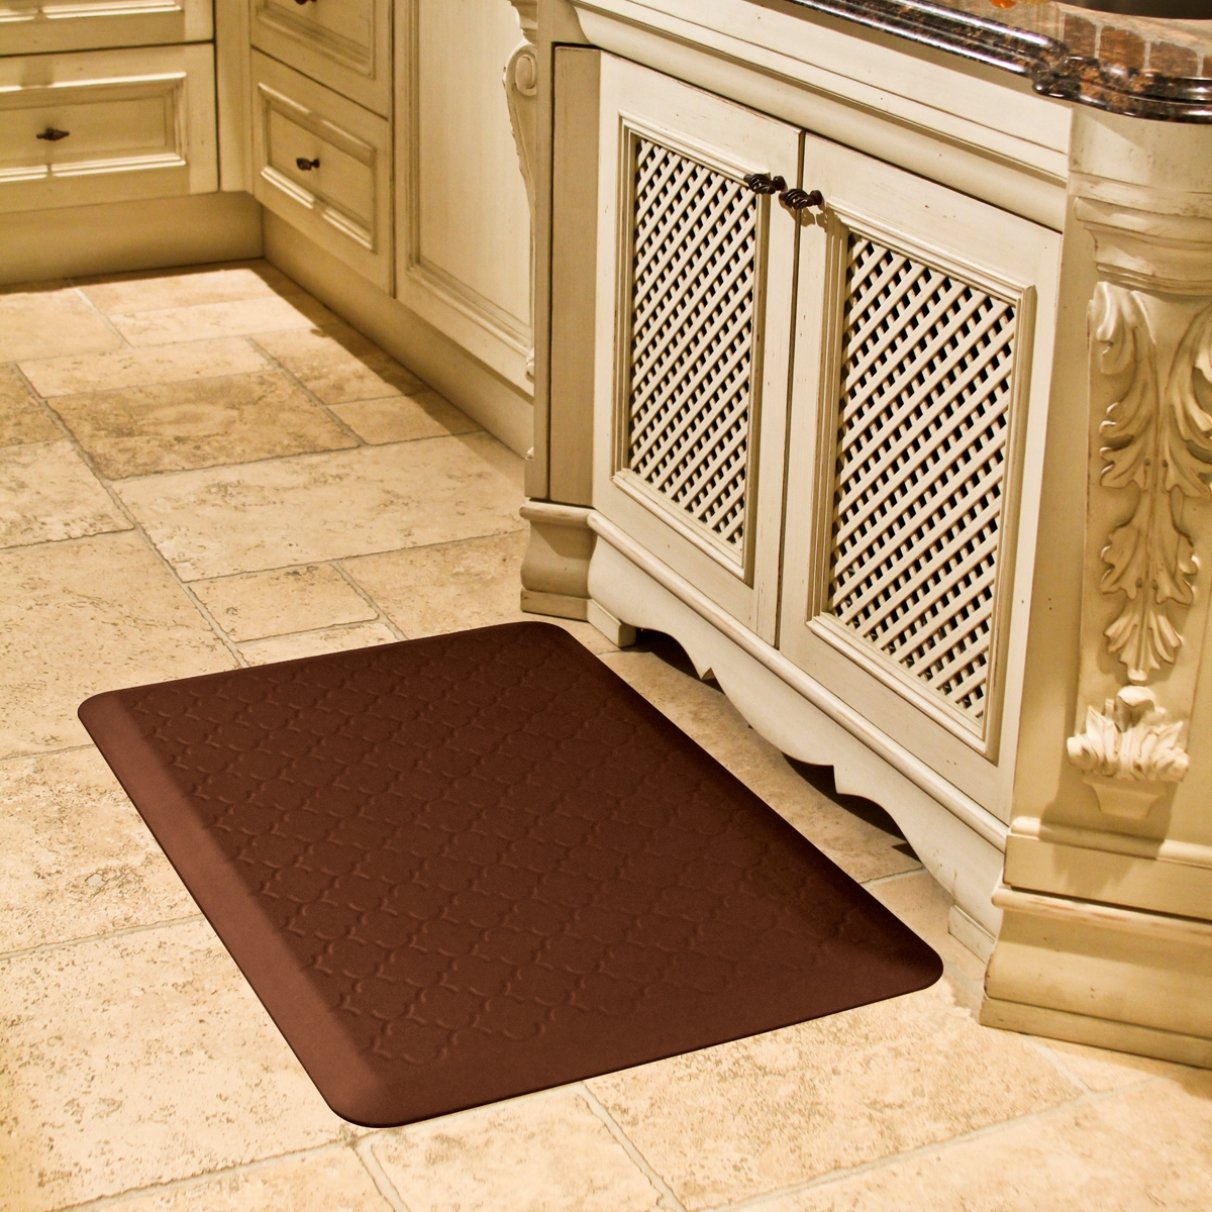 100 gel pro kitchen mat design gallery imprint comfort mats